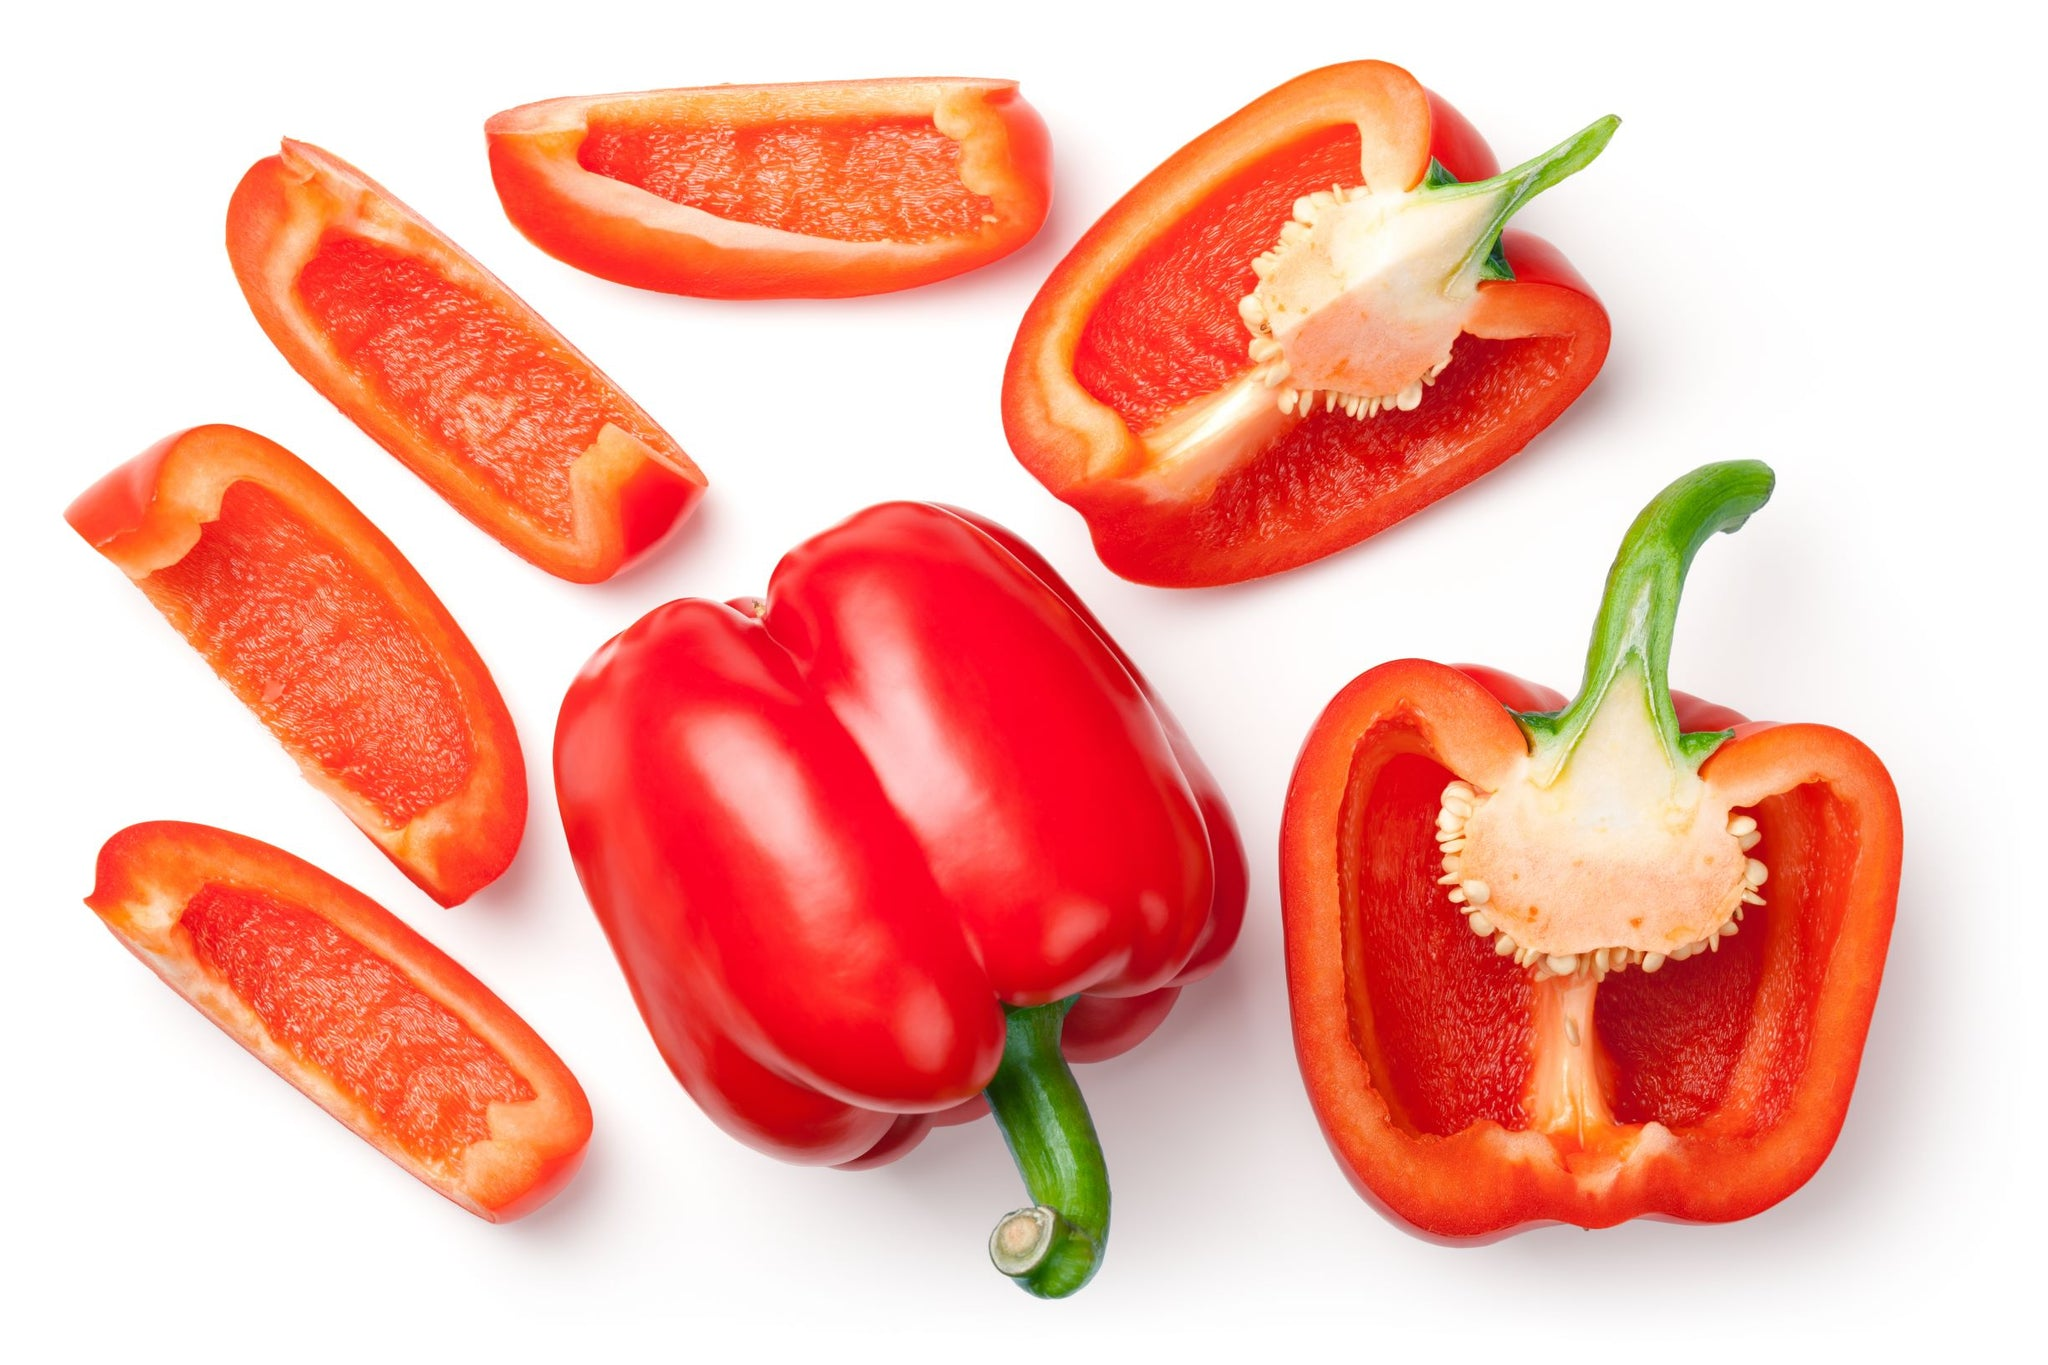 Sysco Imperial Fresh Red Bell Peppers Large 5 lb - 1 Pack [$4.30/lb]